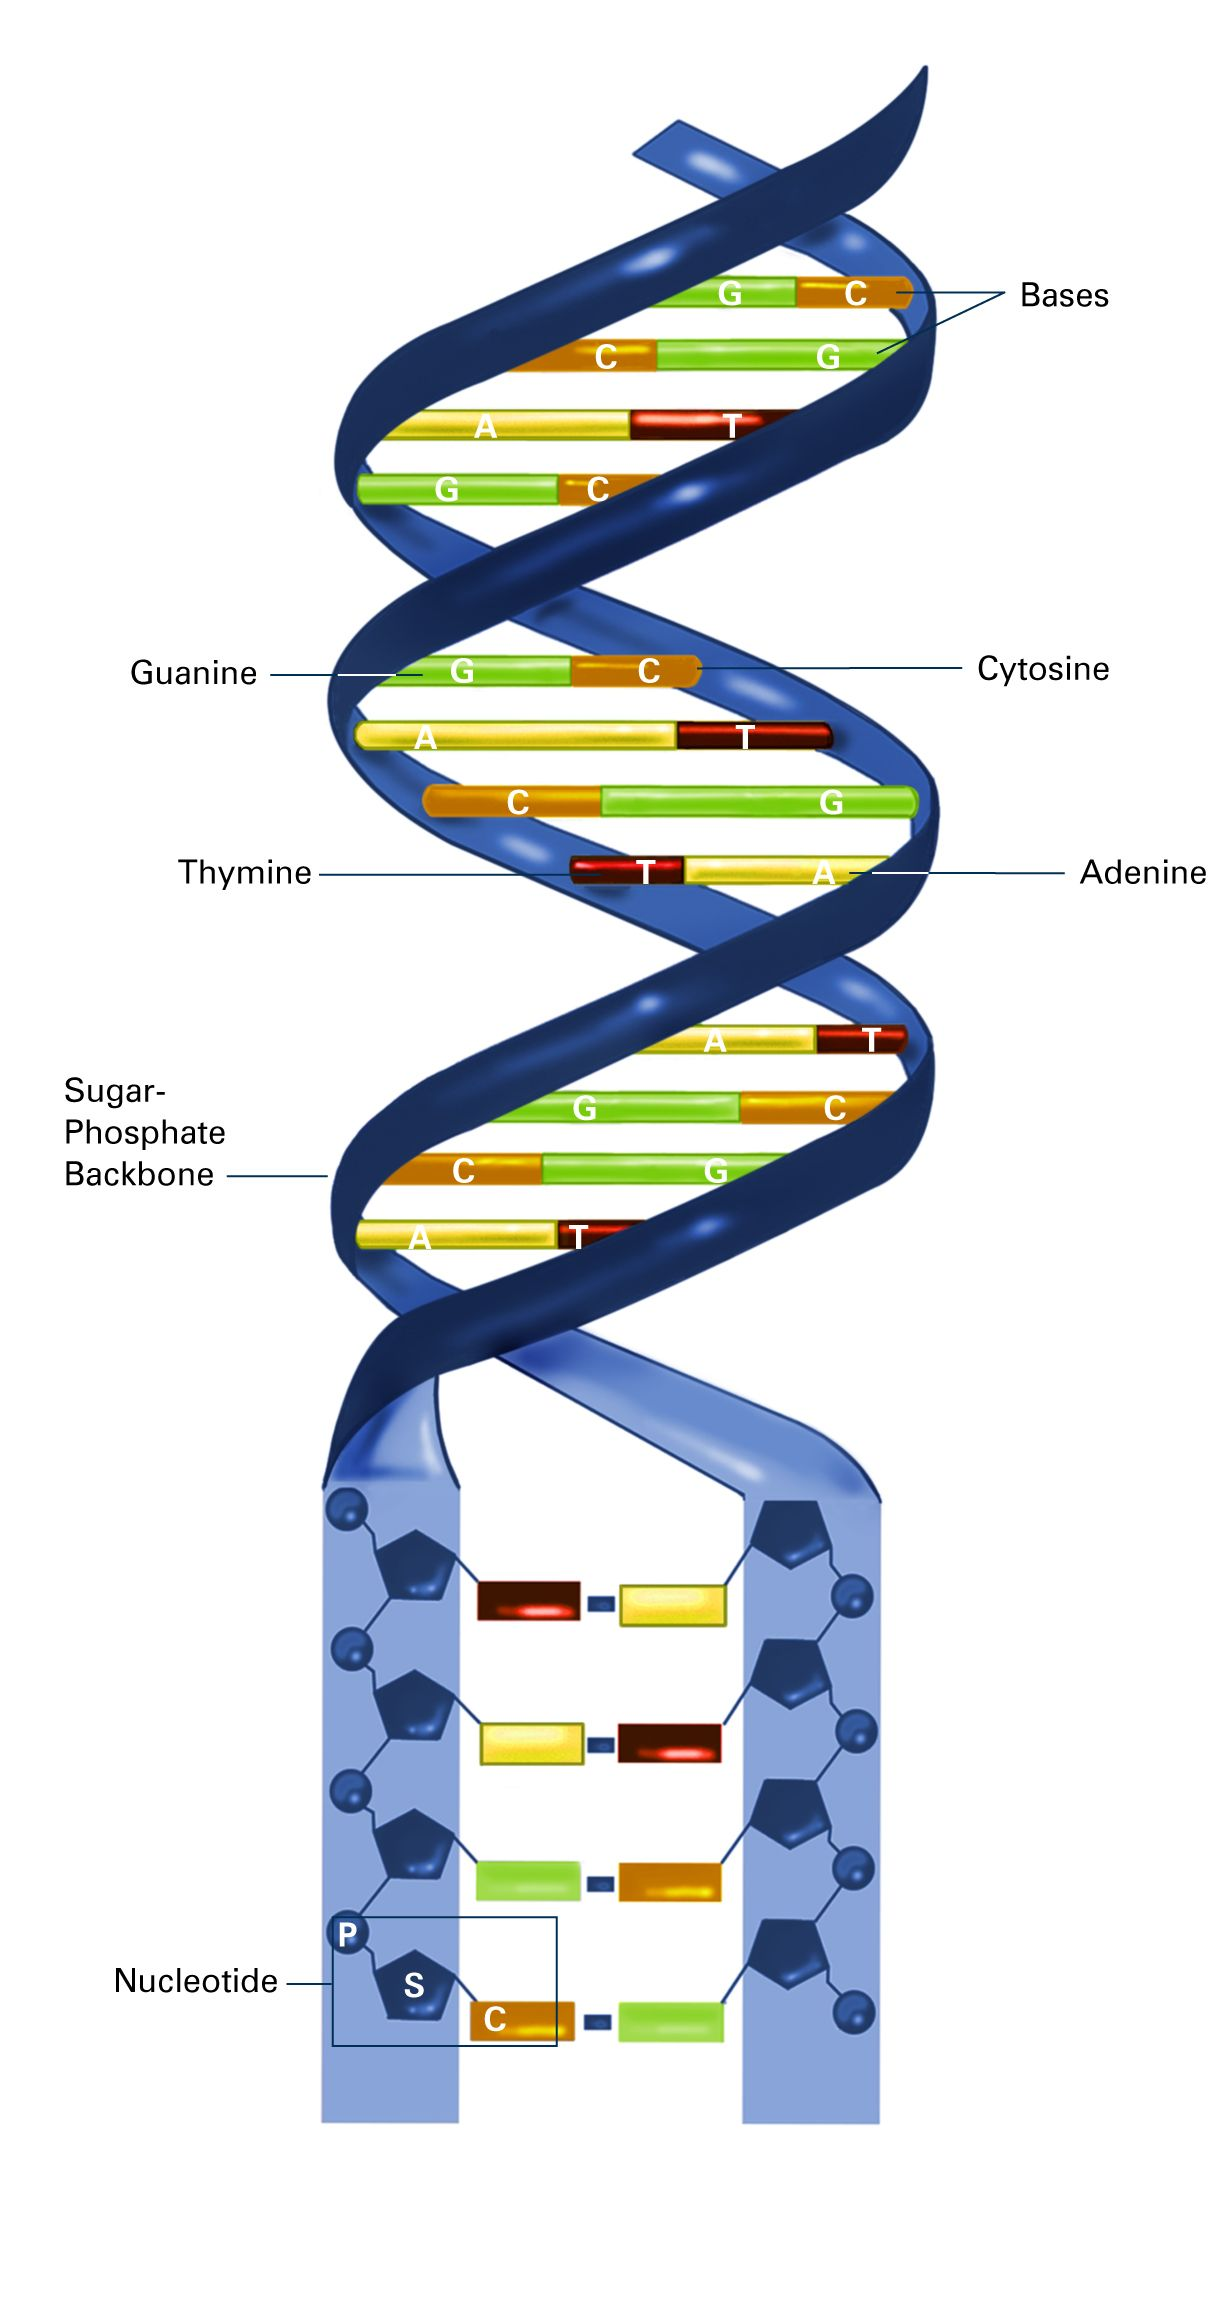 dna model project Google Search random goodness – Dna the Double Helix Worksheet Answers